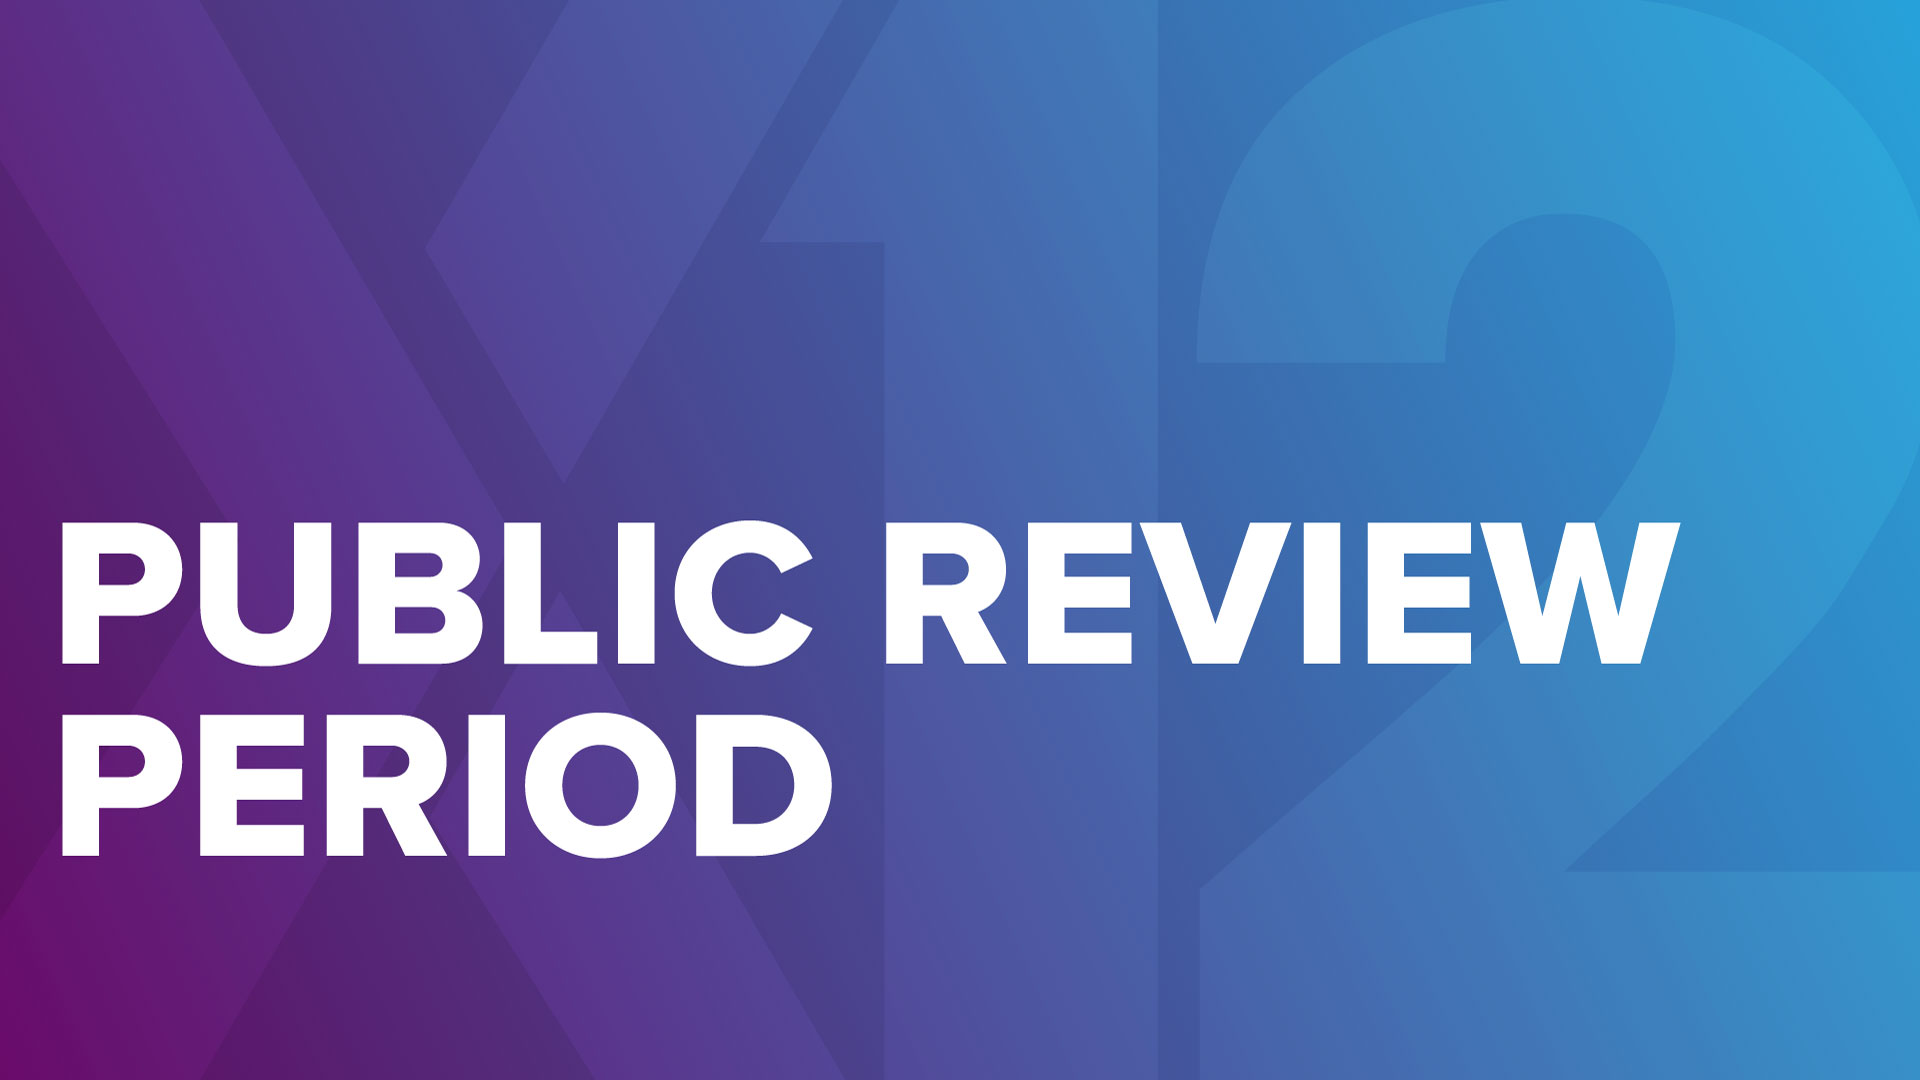 Public Review Period newscard